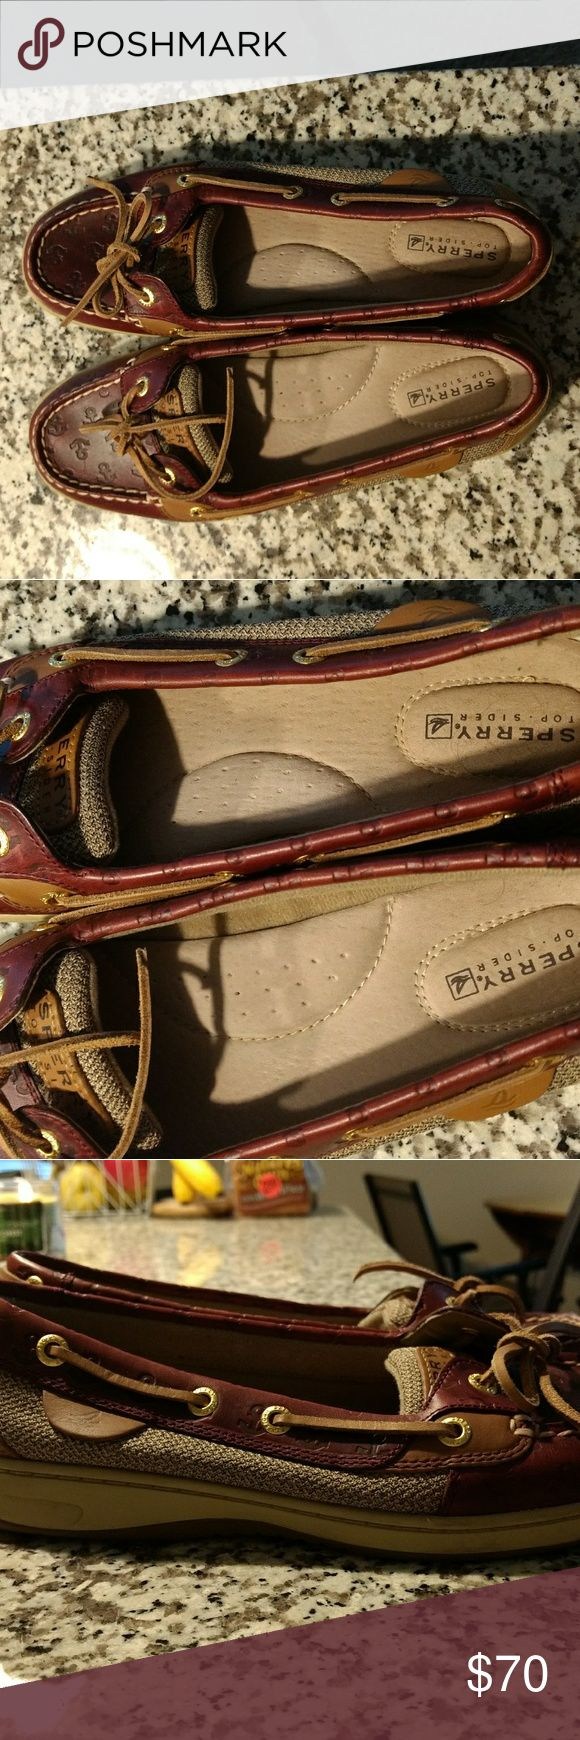 Anchor Sperry Boat Shoes Adorable boat shoes with anchors imprinted on them!! Excellent quality, only worn twice. Classic Sperry look.   Size 8M Sperry Shoes Flats & Loafers